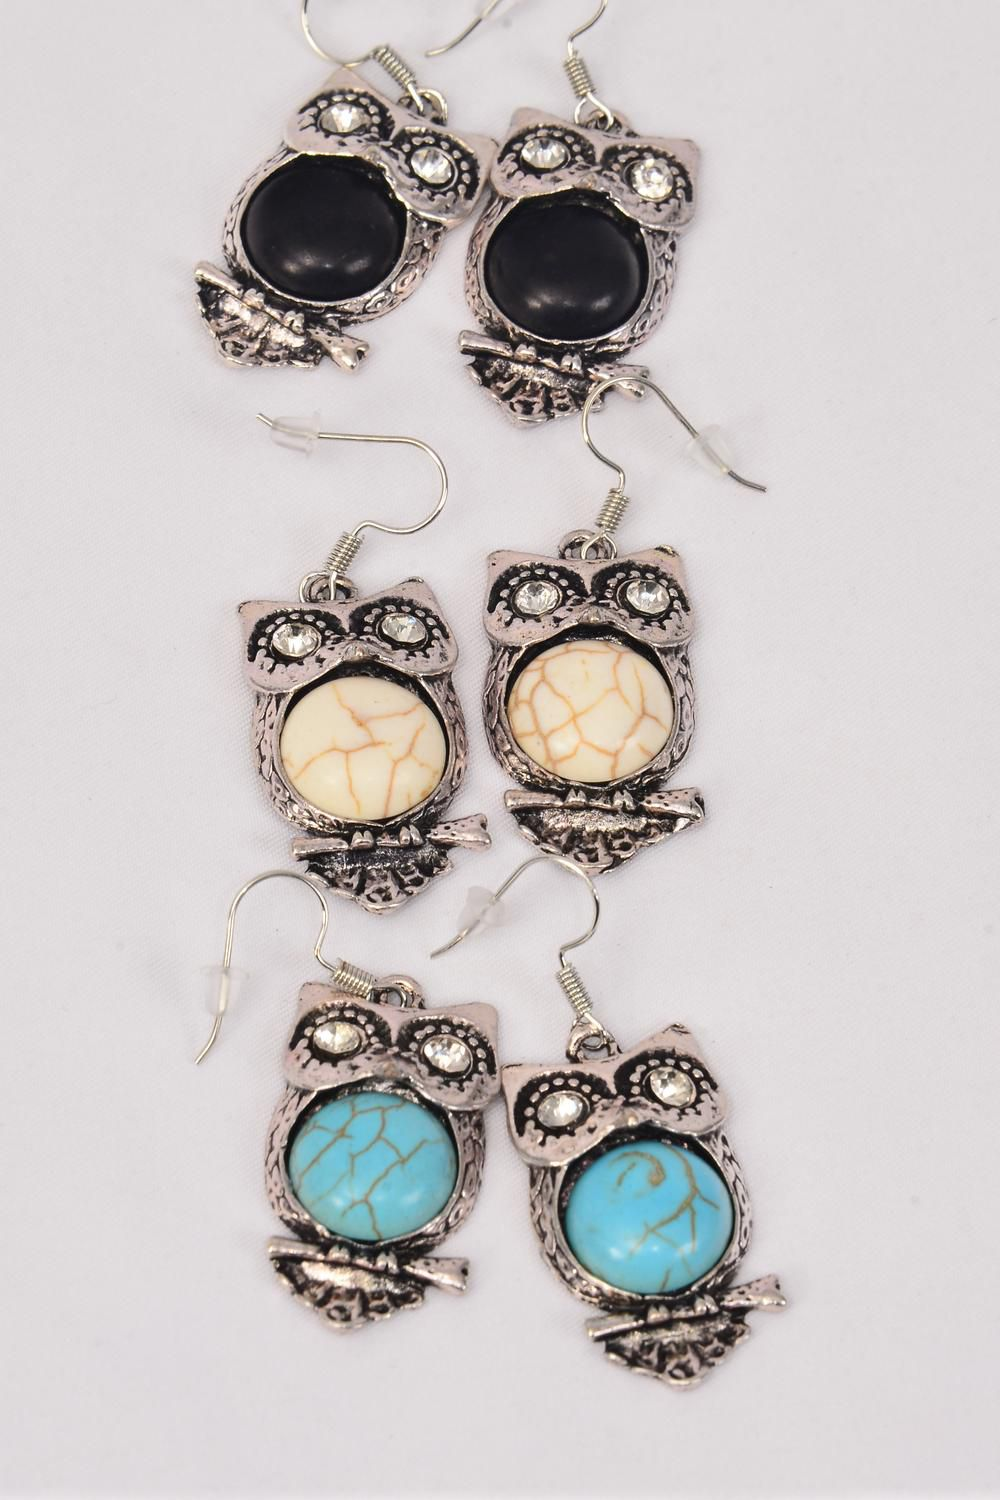 "Earrings Metal Antique Owl Semiprecious Stone/DZ match 75022 or 26092 **Fish Hook** Size-1.25""x 0.75"" Wide,4 Black,4 Ivory,4 Turquoise Asst,Earring Card & OPP Bag & UPC Code -"